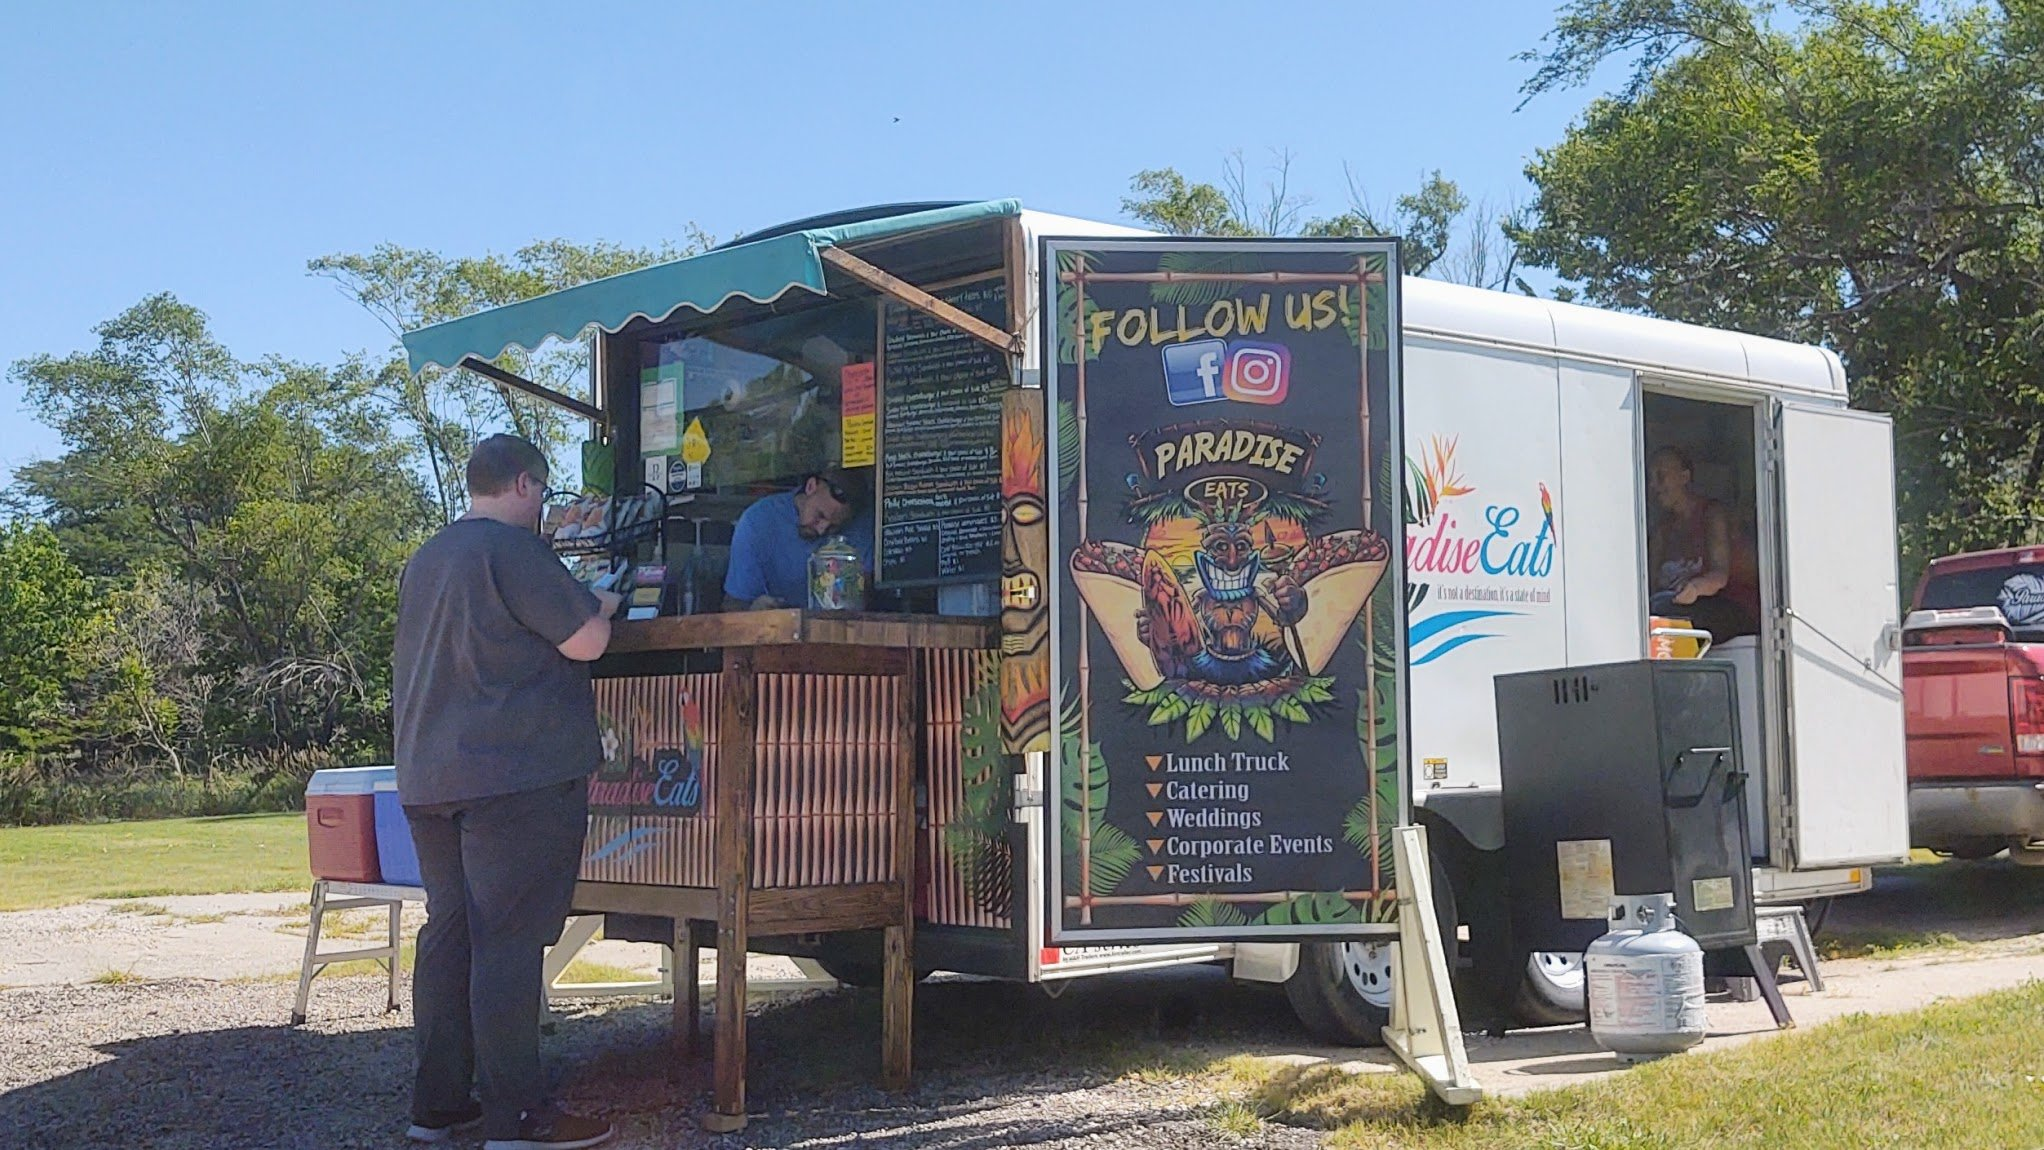 Paradise Eats Lunch Truck visiting Lincoln, KS